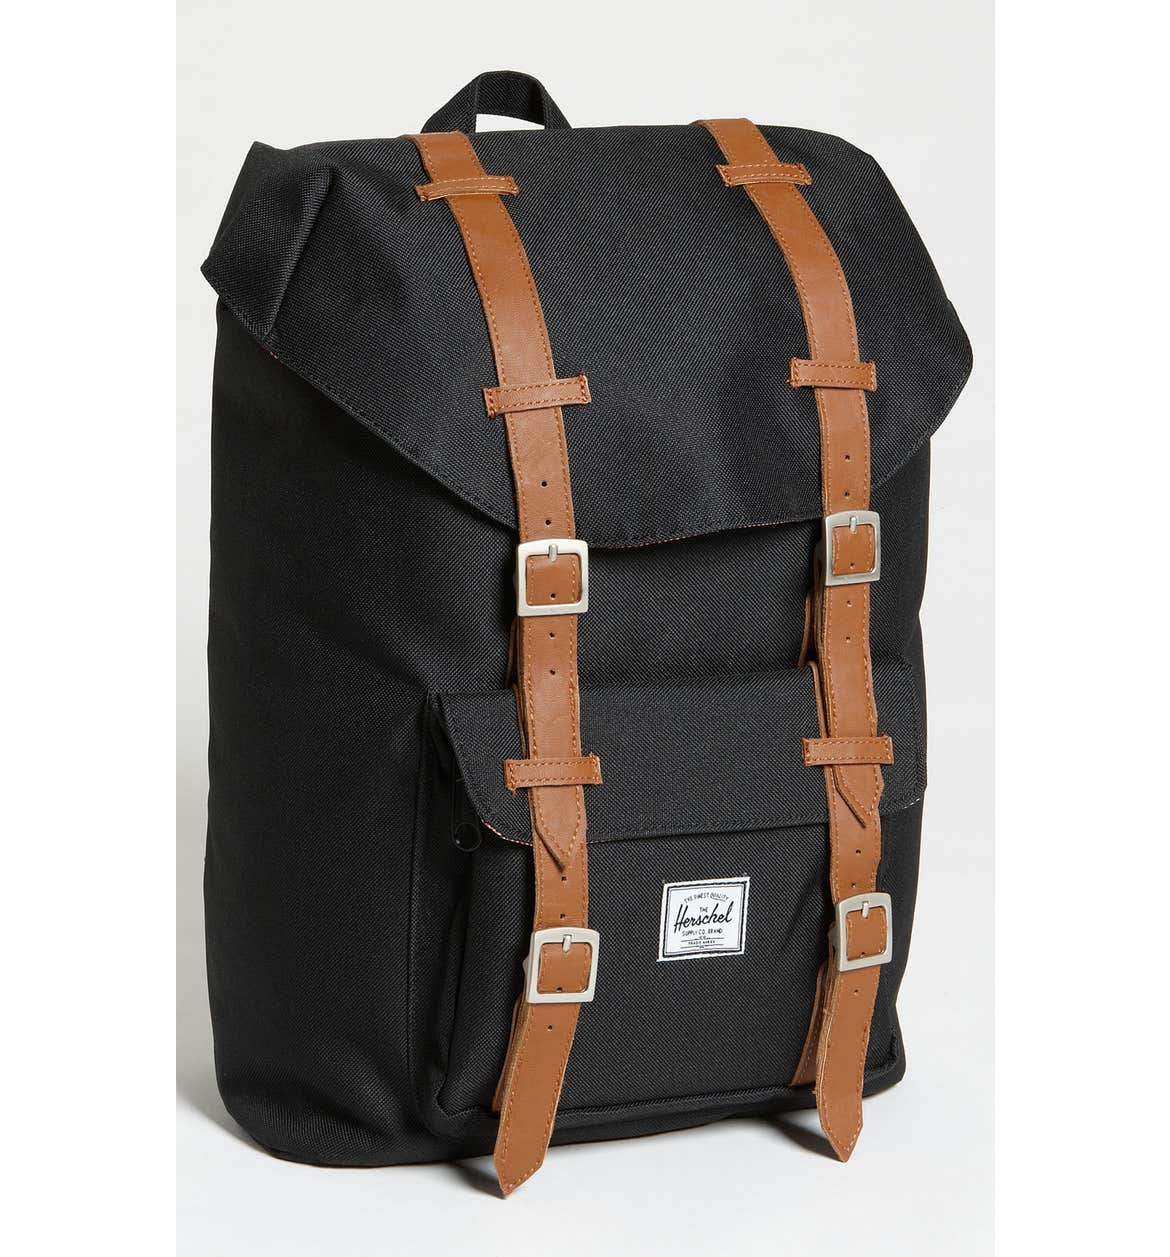 Love these Herschel backpacks